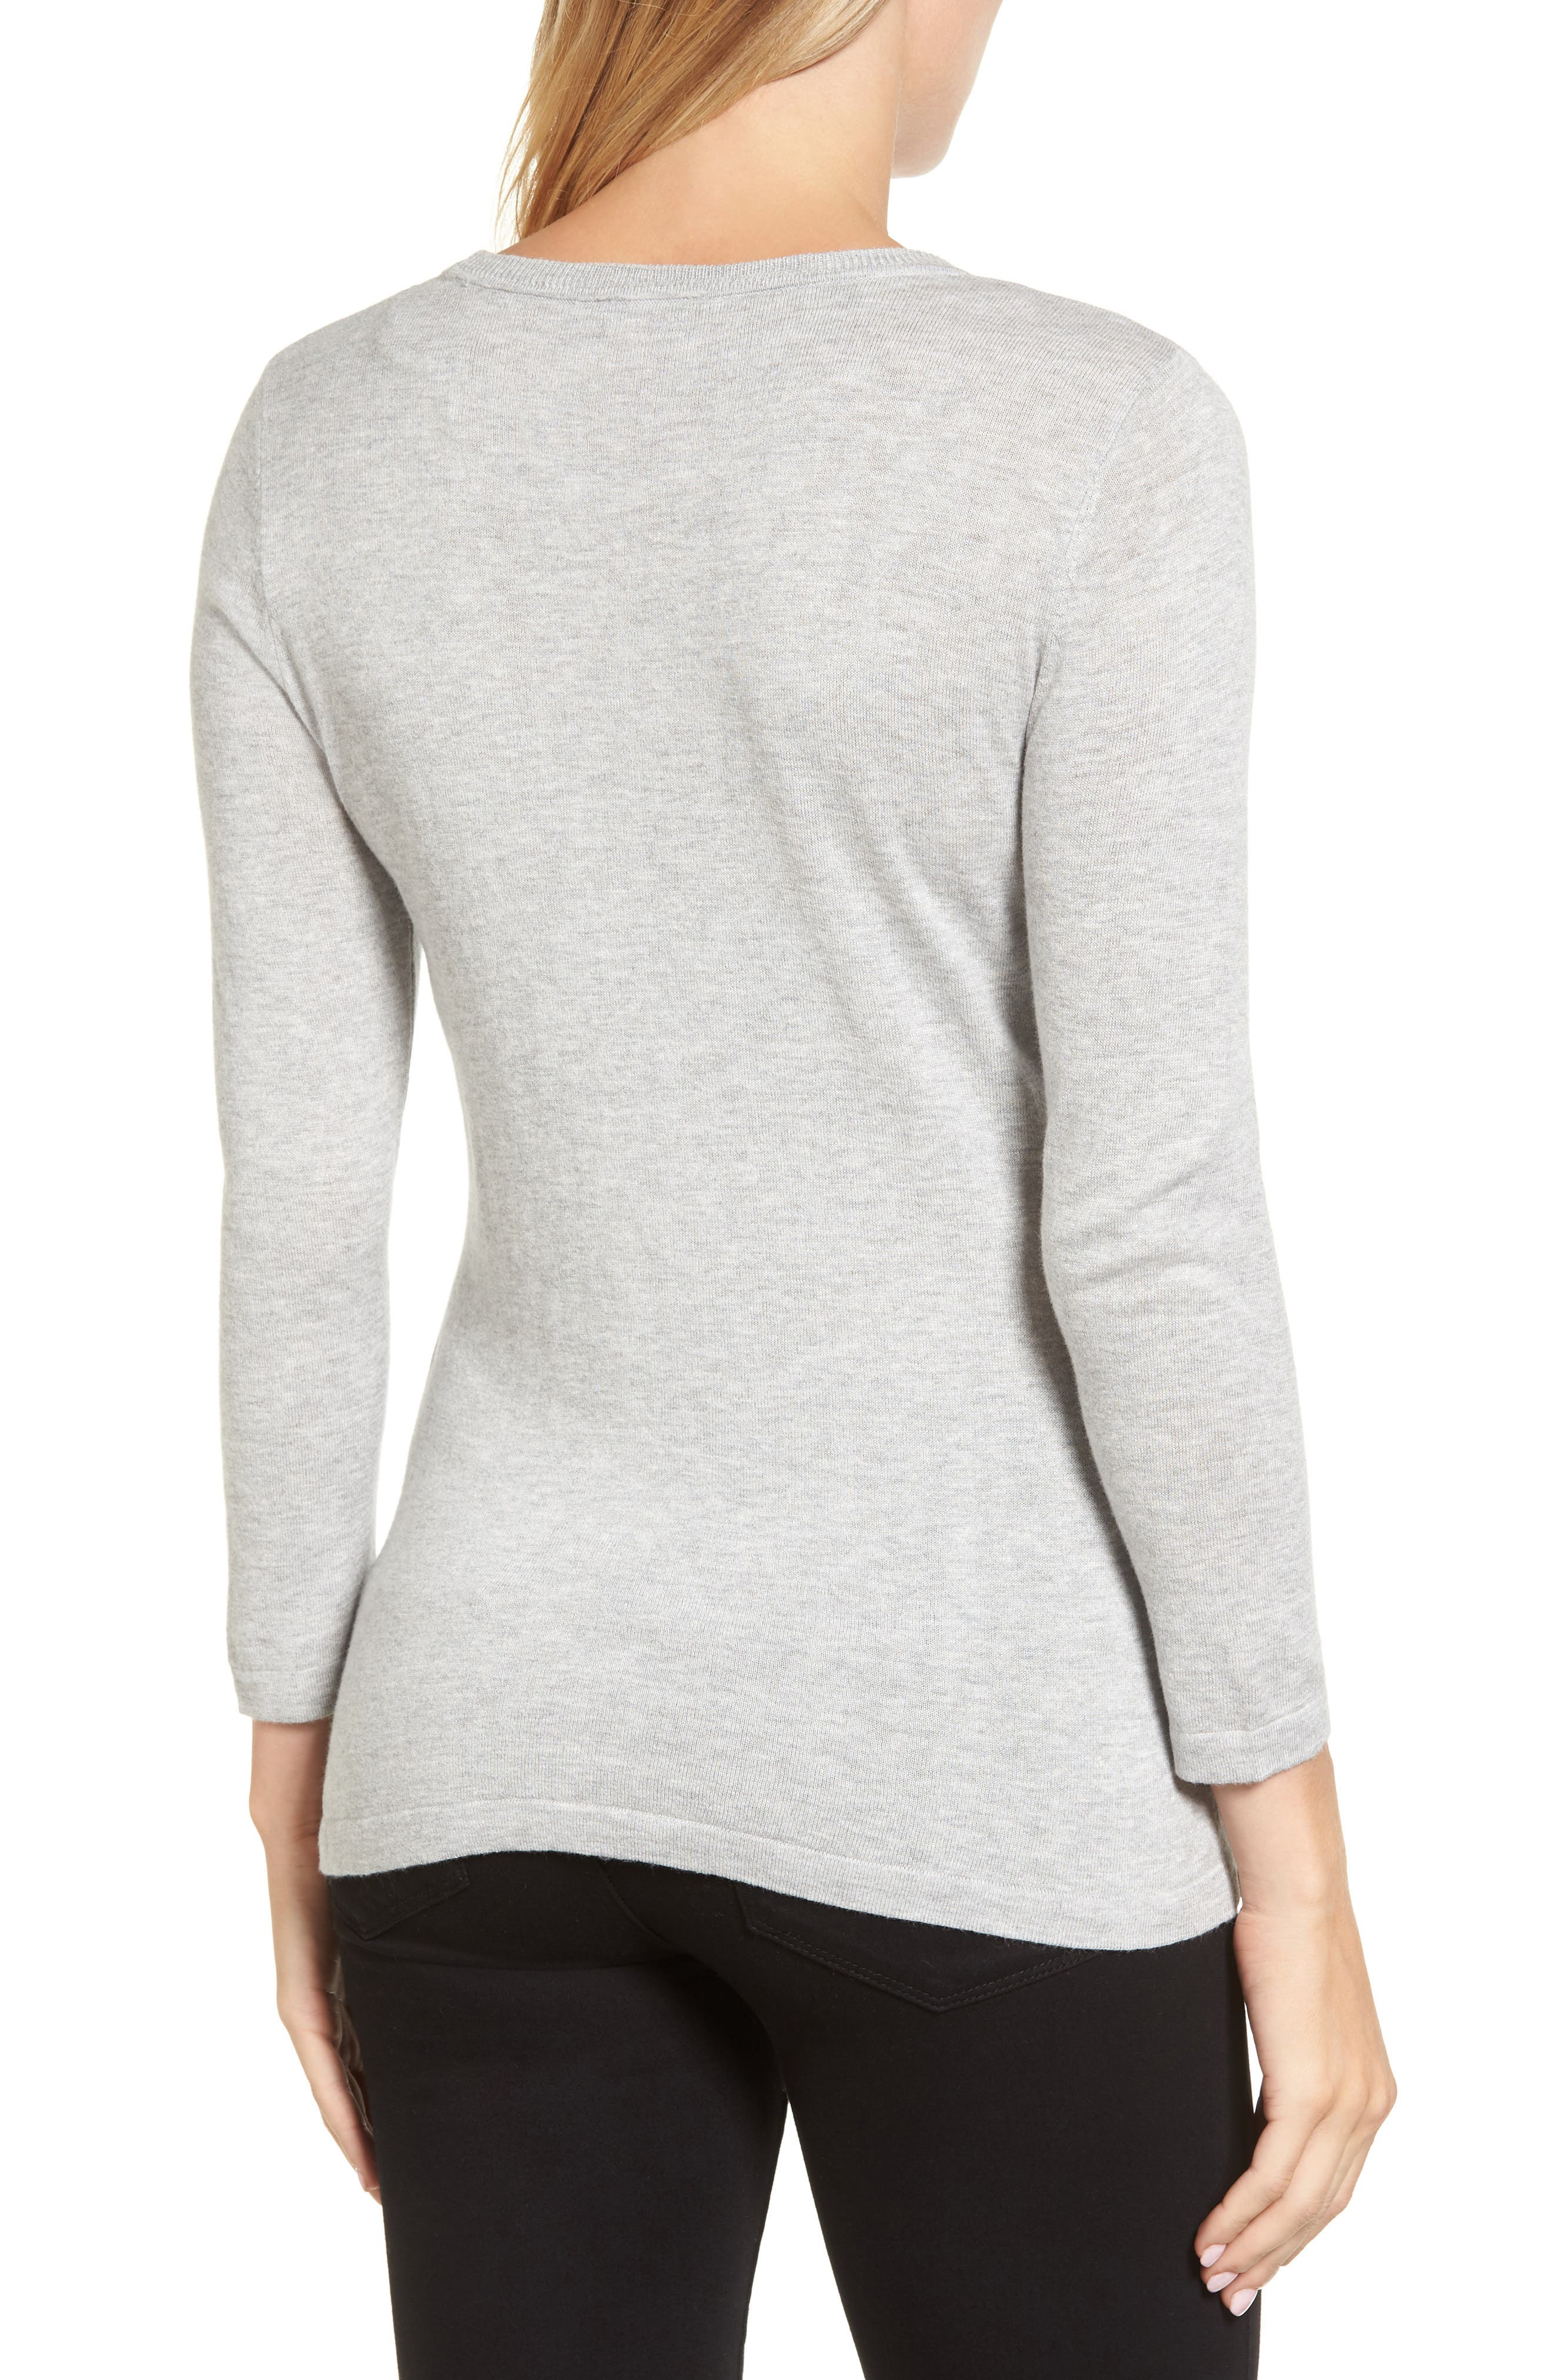 Zigzag Sweater,                             Alternate thumbnail 2, color,                             Grey Heather